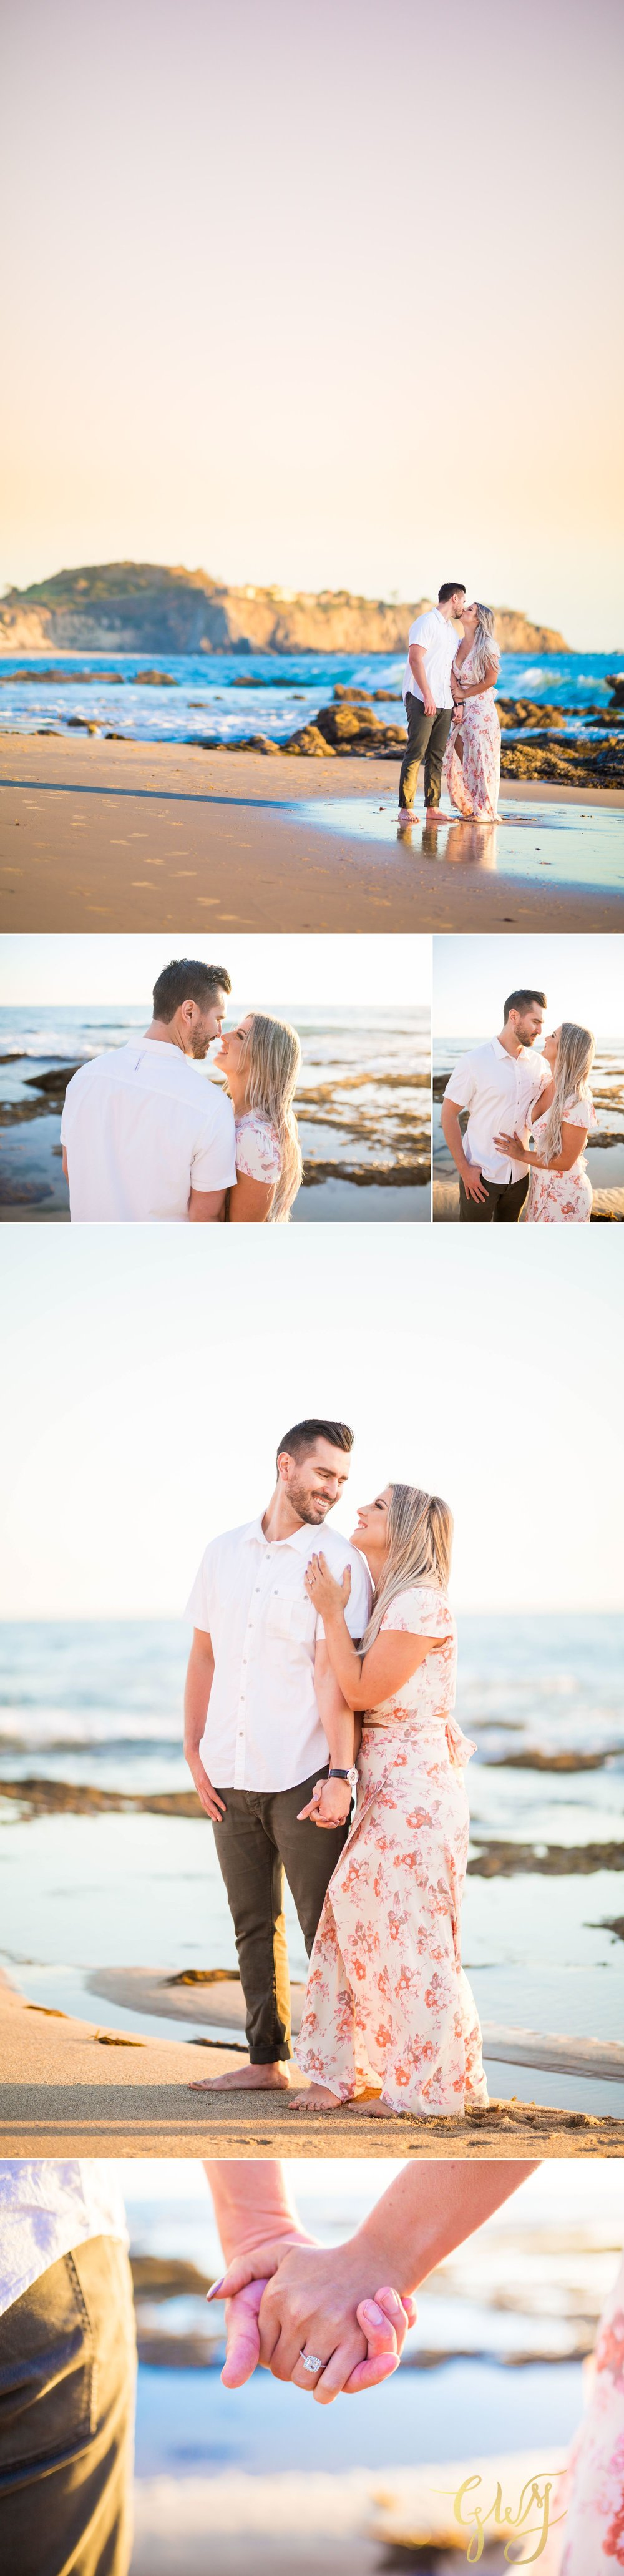 Christien + Crystal Back Bay Newport Crystal Cove Reef Point Sunset Engagement Portrait Session by Glass Woods Media 16.jpg